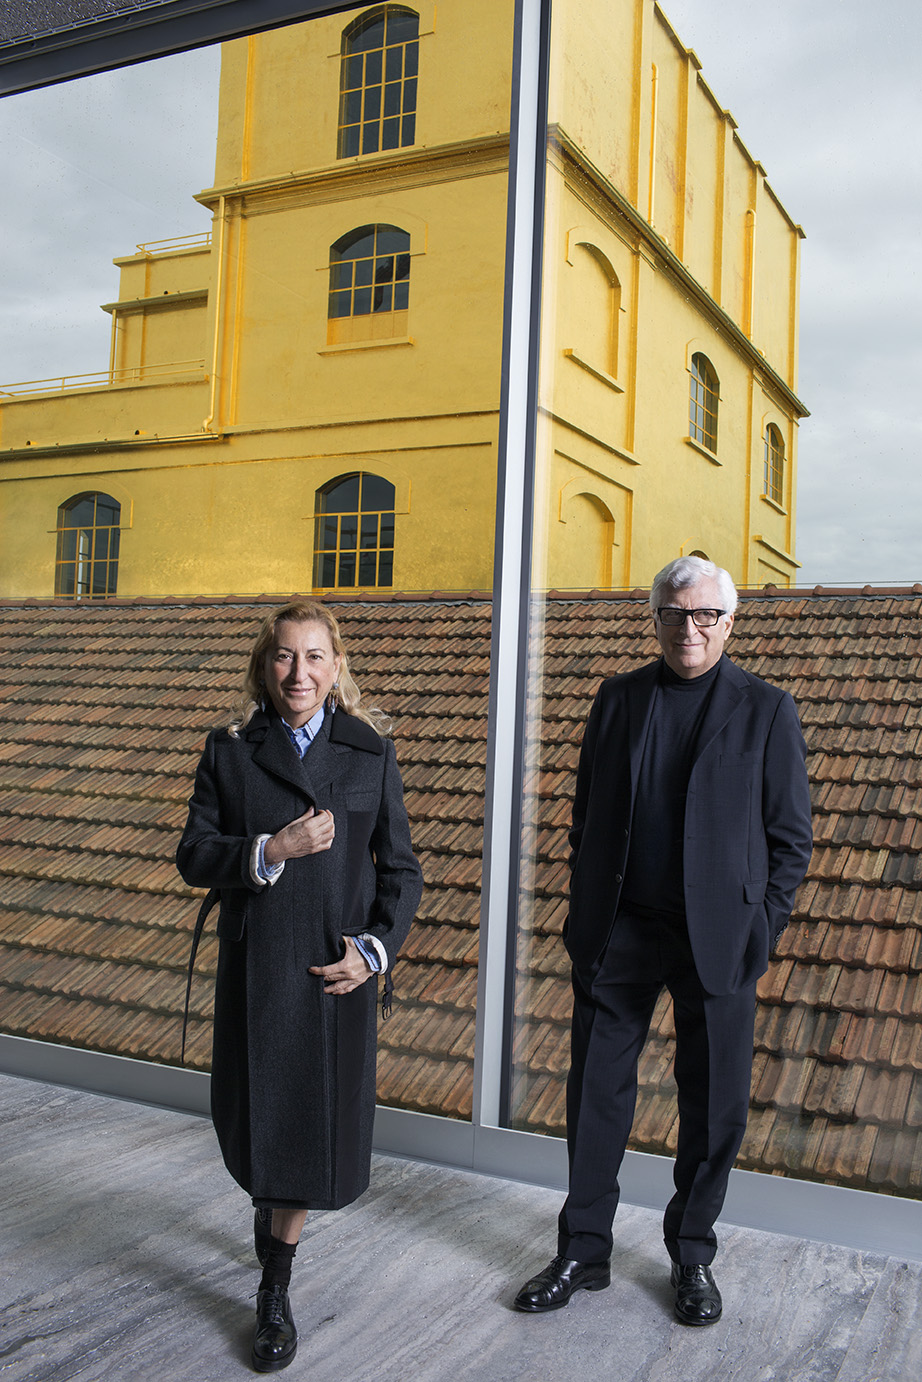 Miuccia Prada and Patrizio Bertelli, Fondazione Prada Milano, for Financial Times Magazine